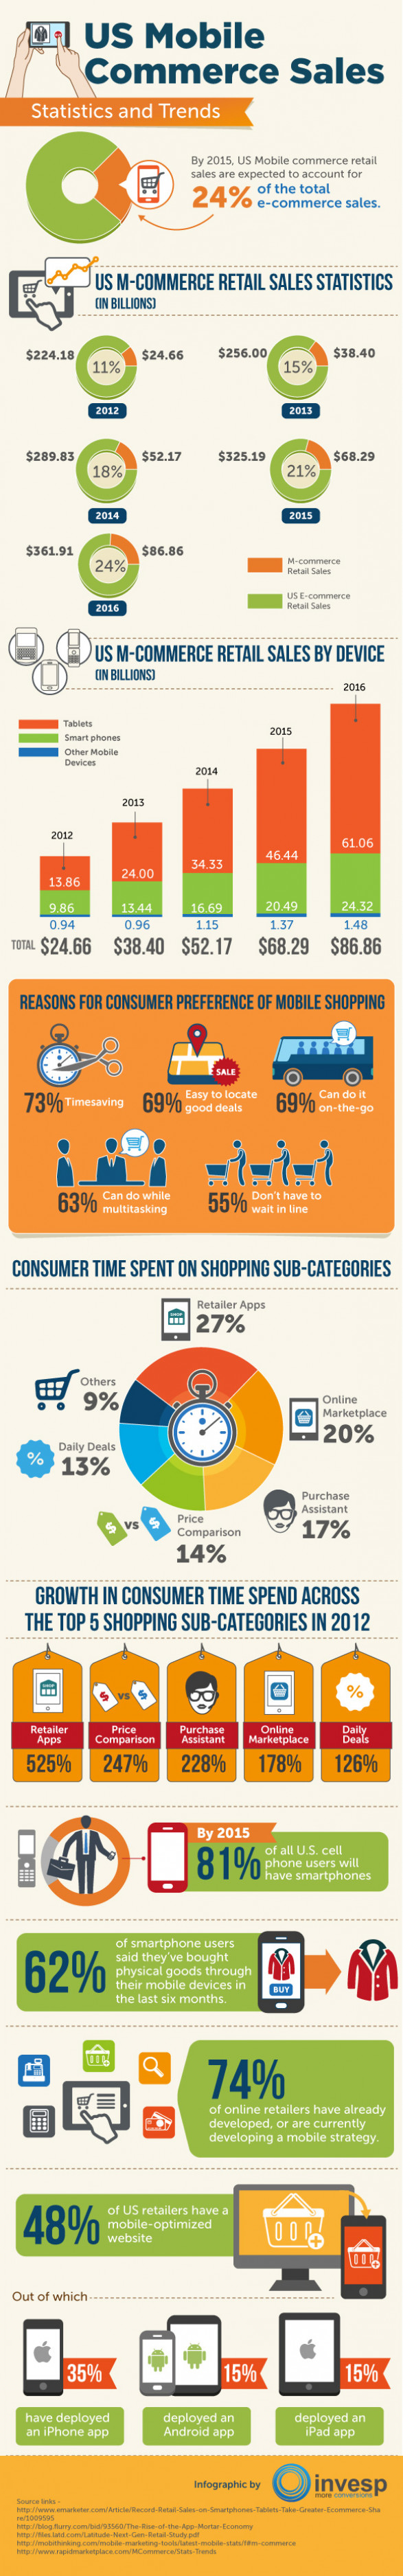 US Mobile Commerce Sales � Statistics and Trends